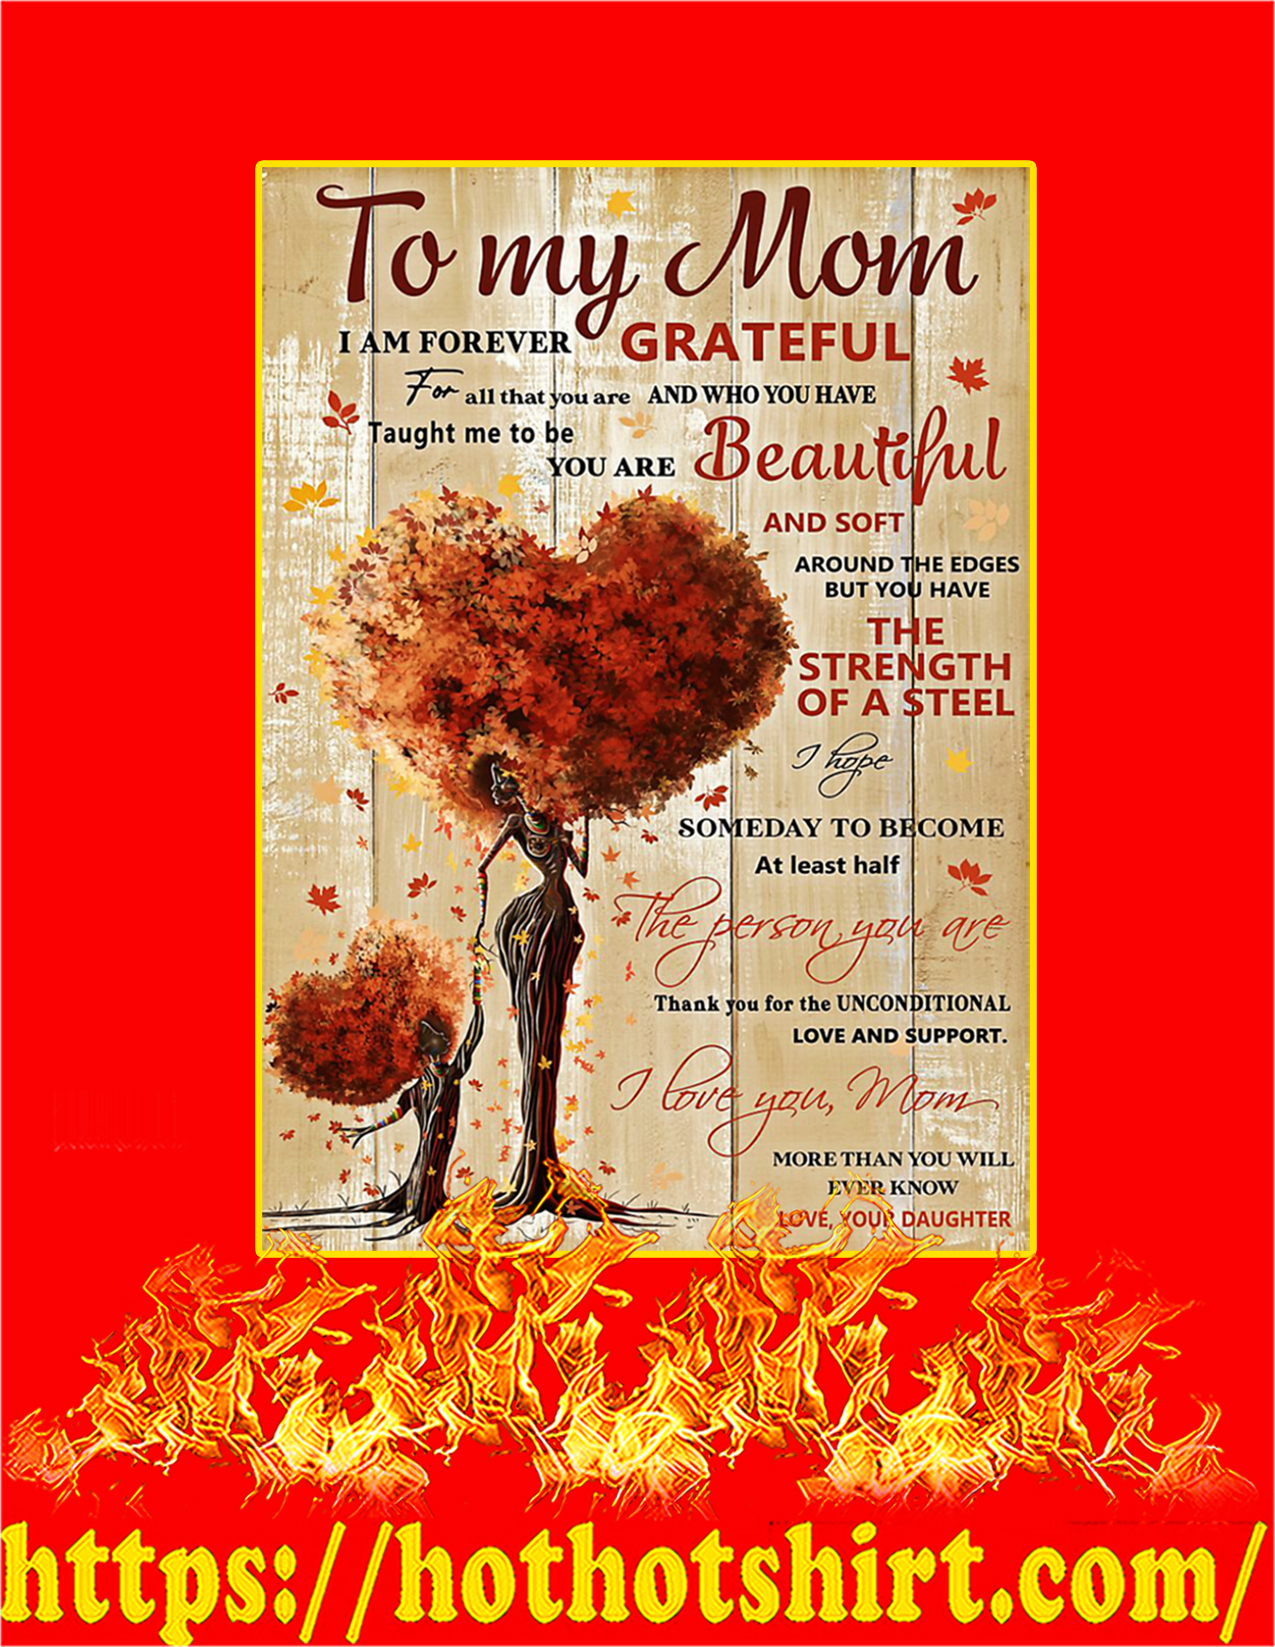 To my mom I'm forever grateful daughter poster - A2